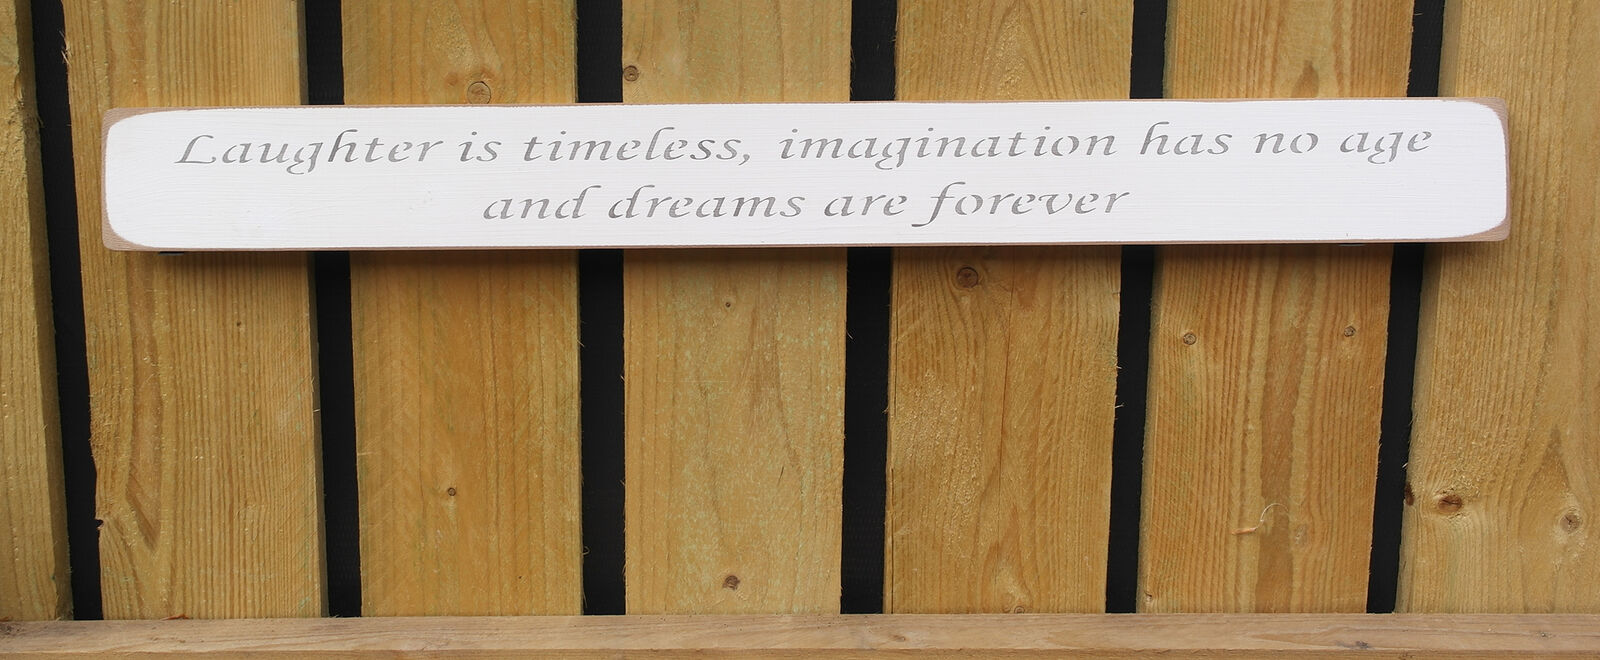 Handmade wooden sign Laughter is timeless, imagination has no age....